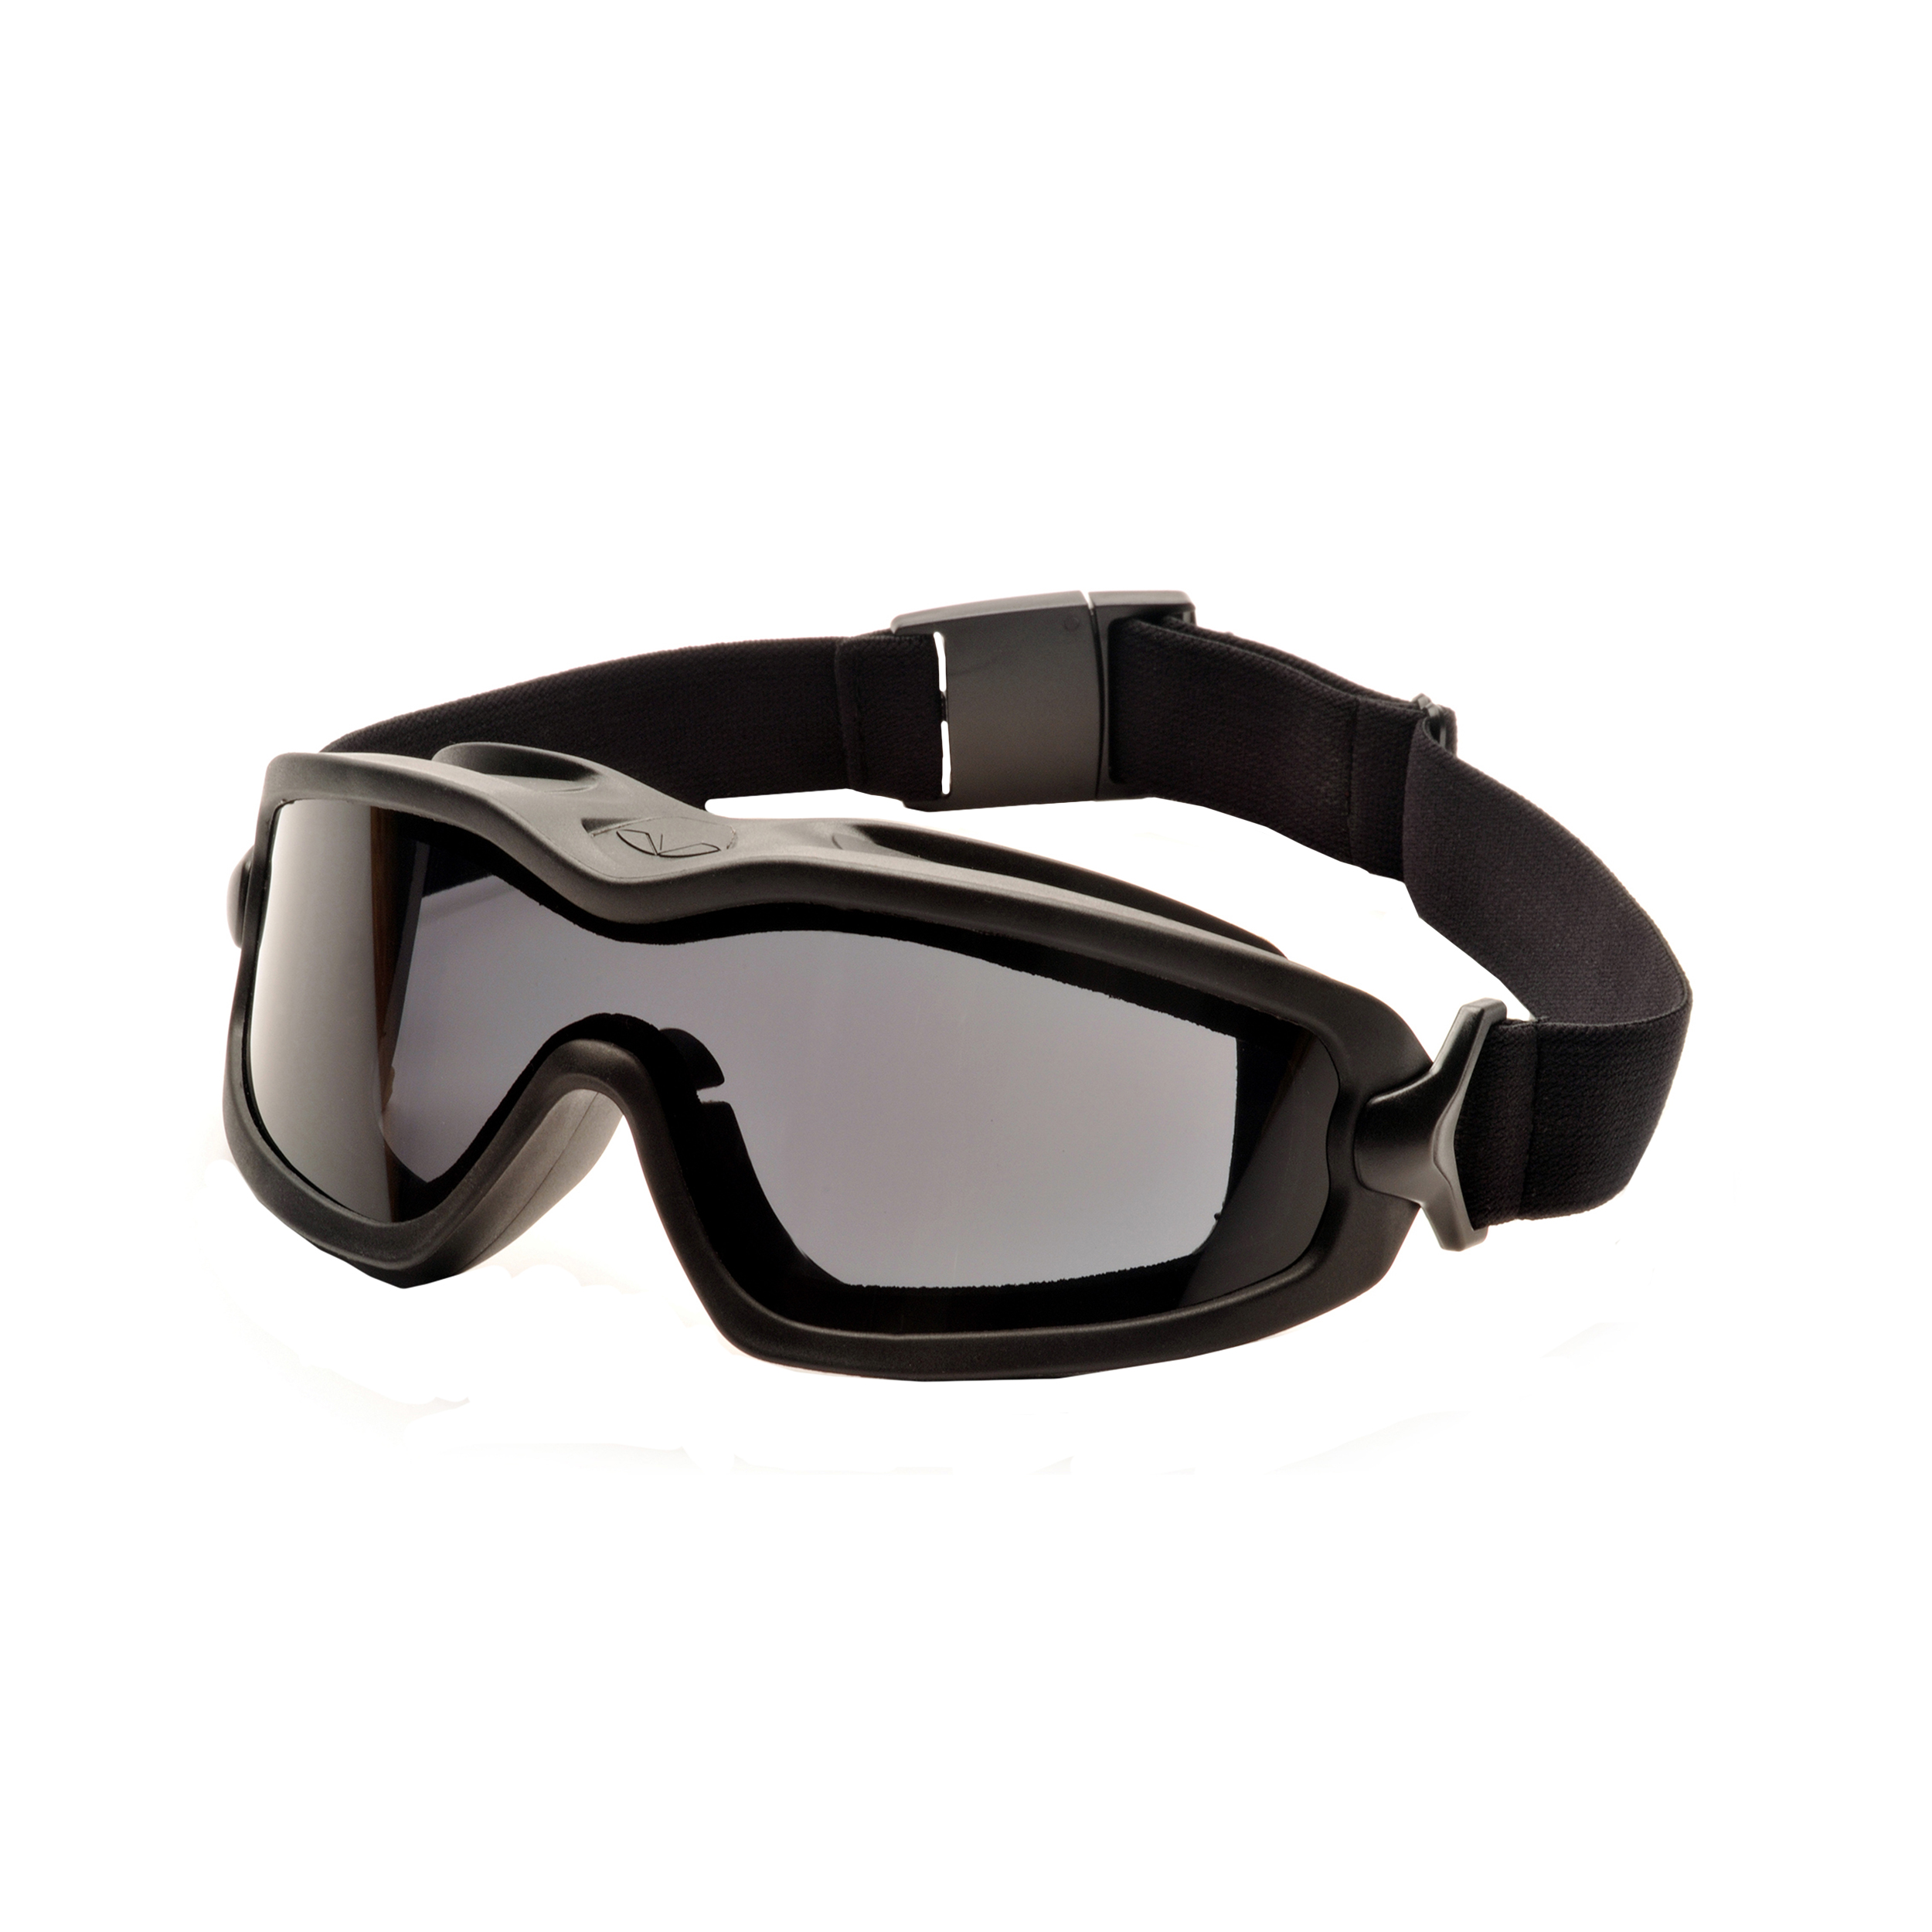 Pyramex Safety Products V2G Plus Safety Glasses Gray Anti-Fog Dual Lens with Black Strap by Pyramex Safety Products